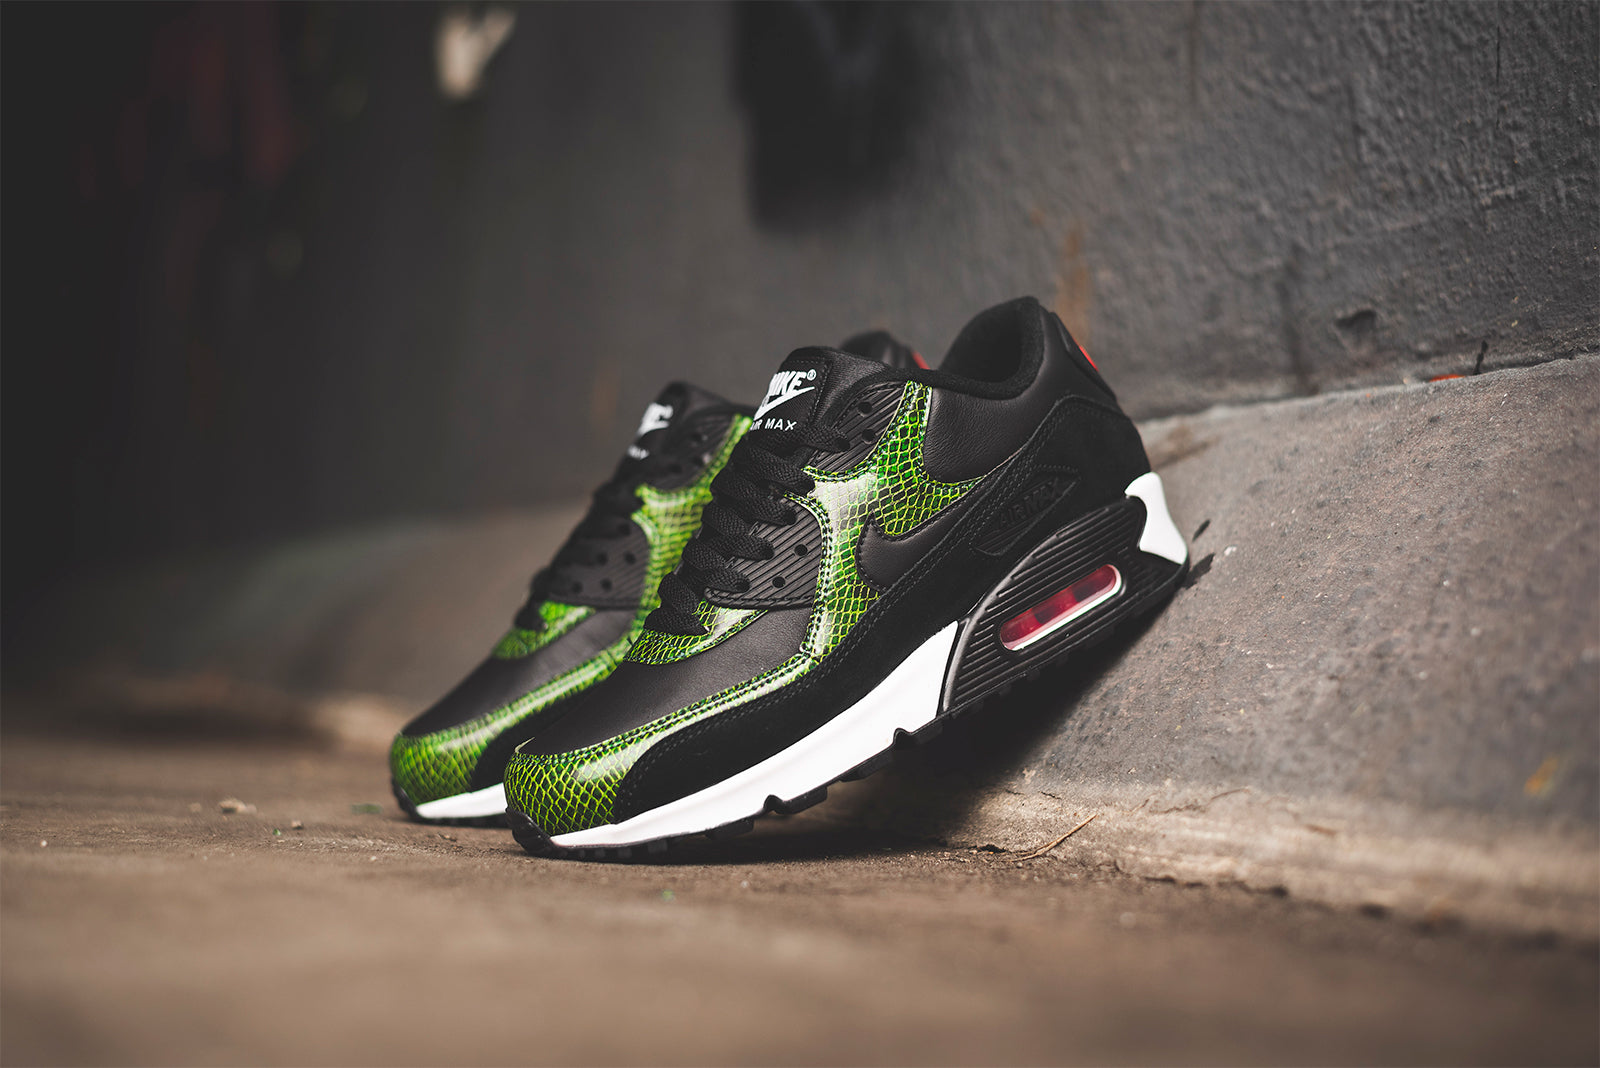 9cb6d127d7 Ever since its drop in 2002, 'Python' has remained one of the most iconic Air  Max 90 colourways to this day. The introduction of a snakeskin pattern and  ...